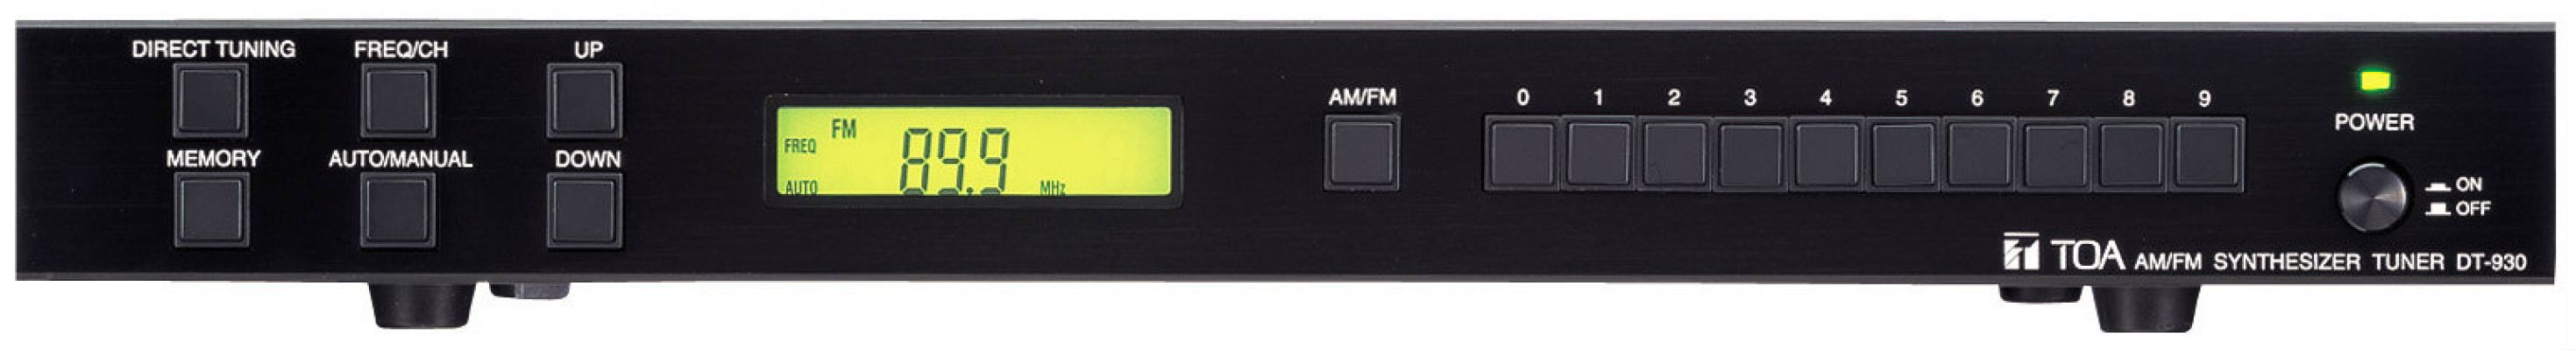 TOA AM/FM SYNTHESIZER TUNER.DT-930 UL